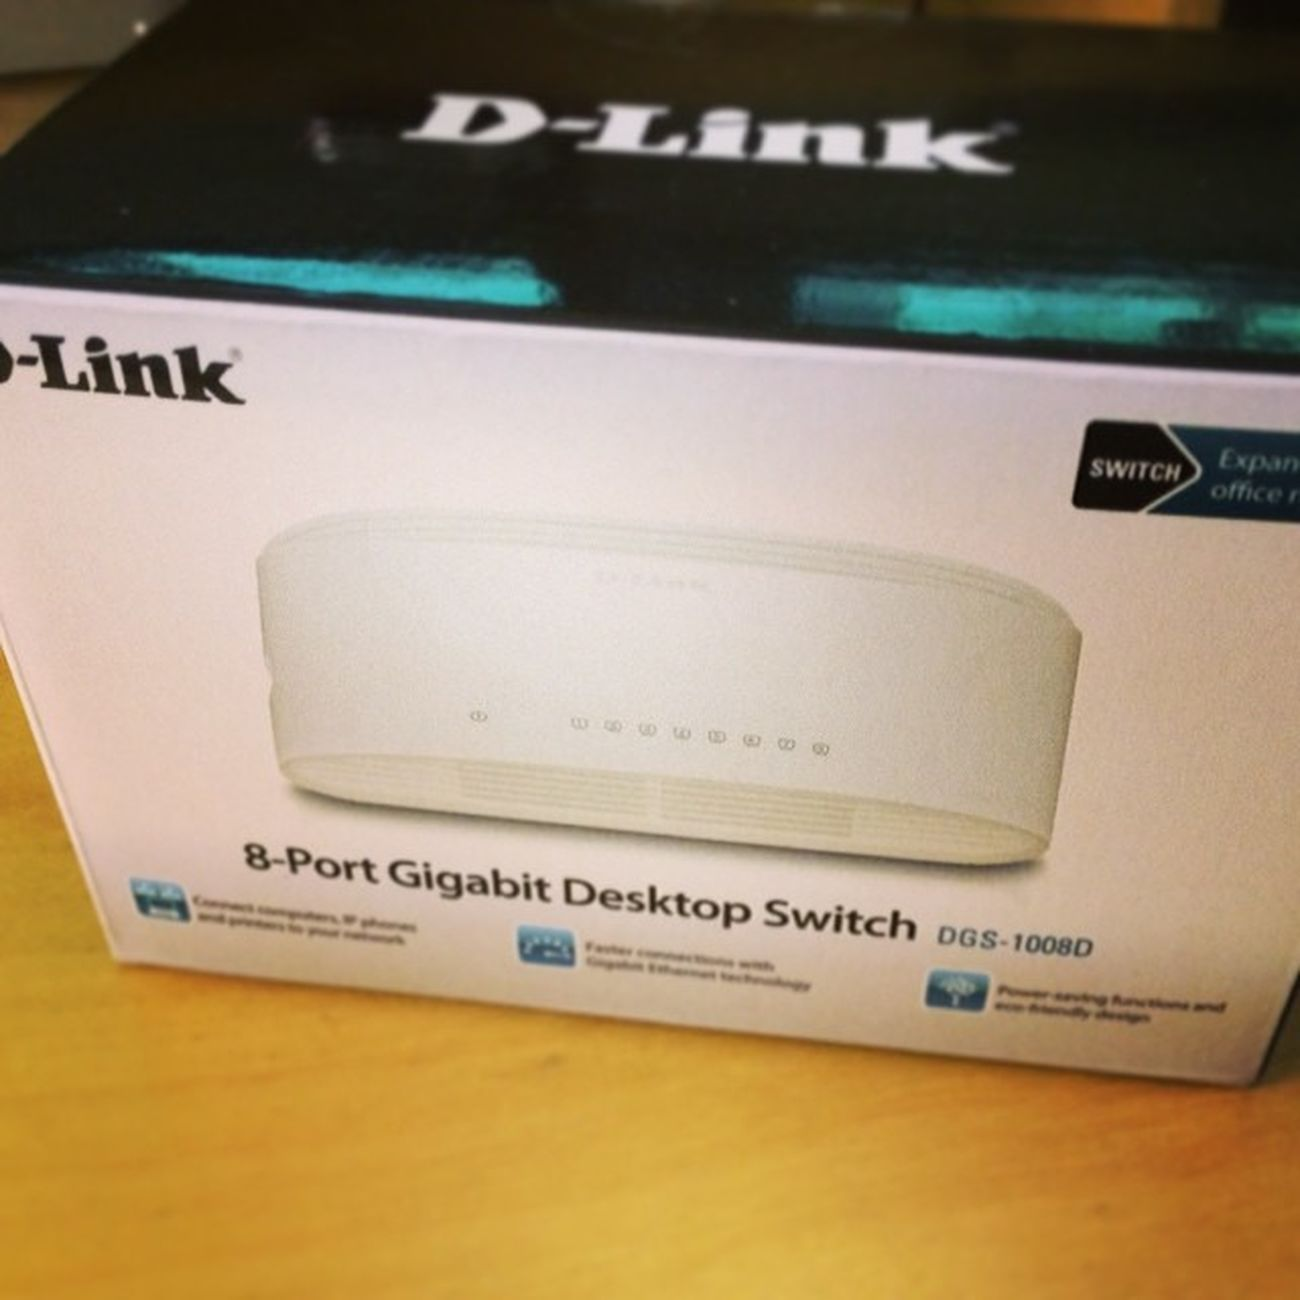 Endlich haben auch meine #MediaCenter und #Spielkonsolen eine stabile und schnelle Anbindung an mein Heimisches Netzwerk #Gigabit #LAN #Switch #8Port #Dlink #D-Link #dlinkgreen Switch D Lan Dlink Mediacenter 8port Dlinkgreen Spielkonsolen Gigabit